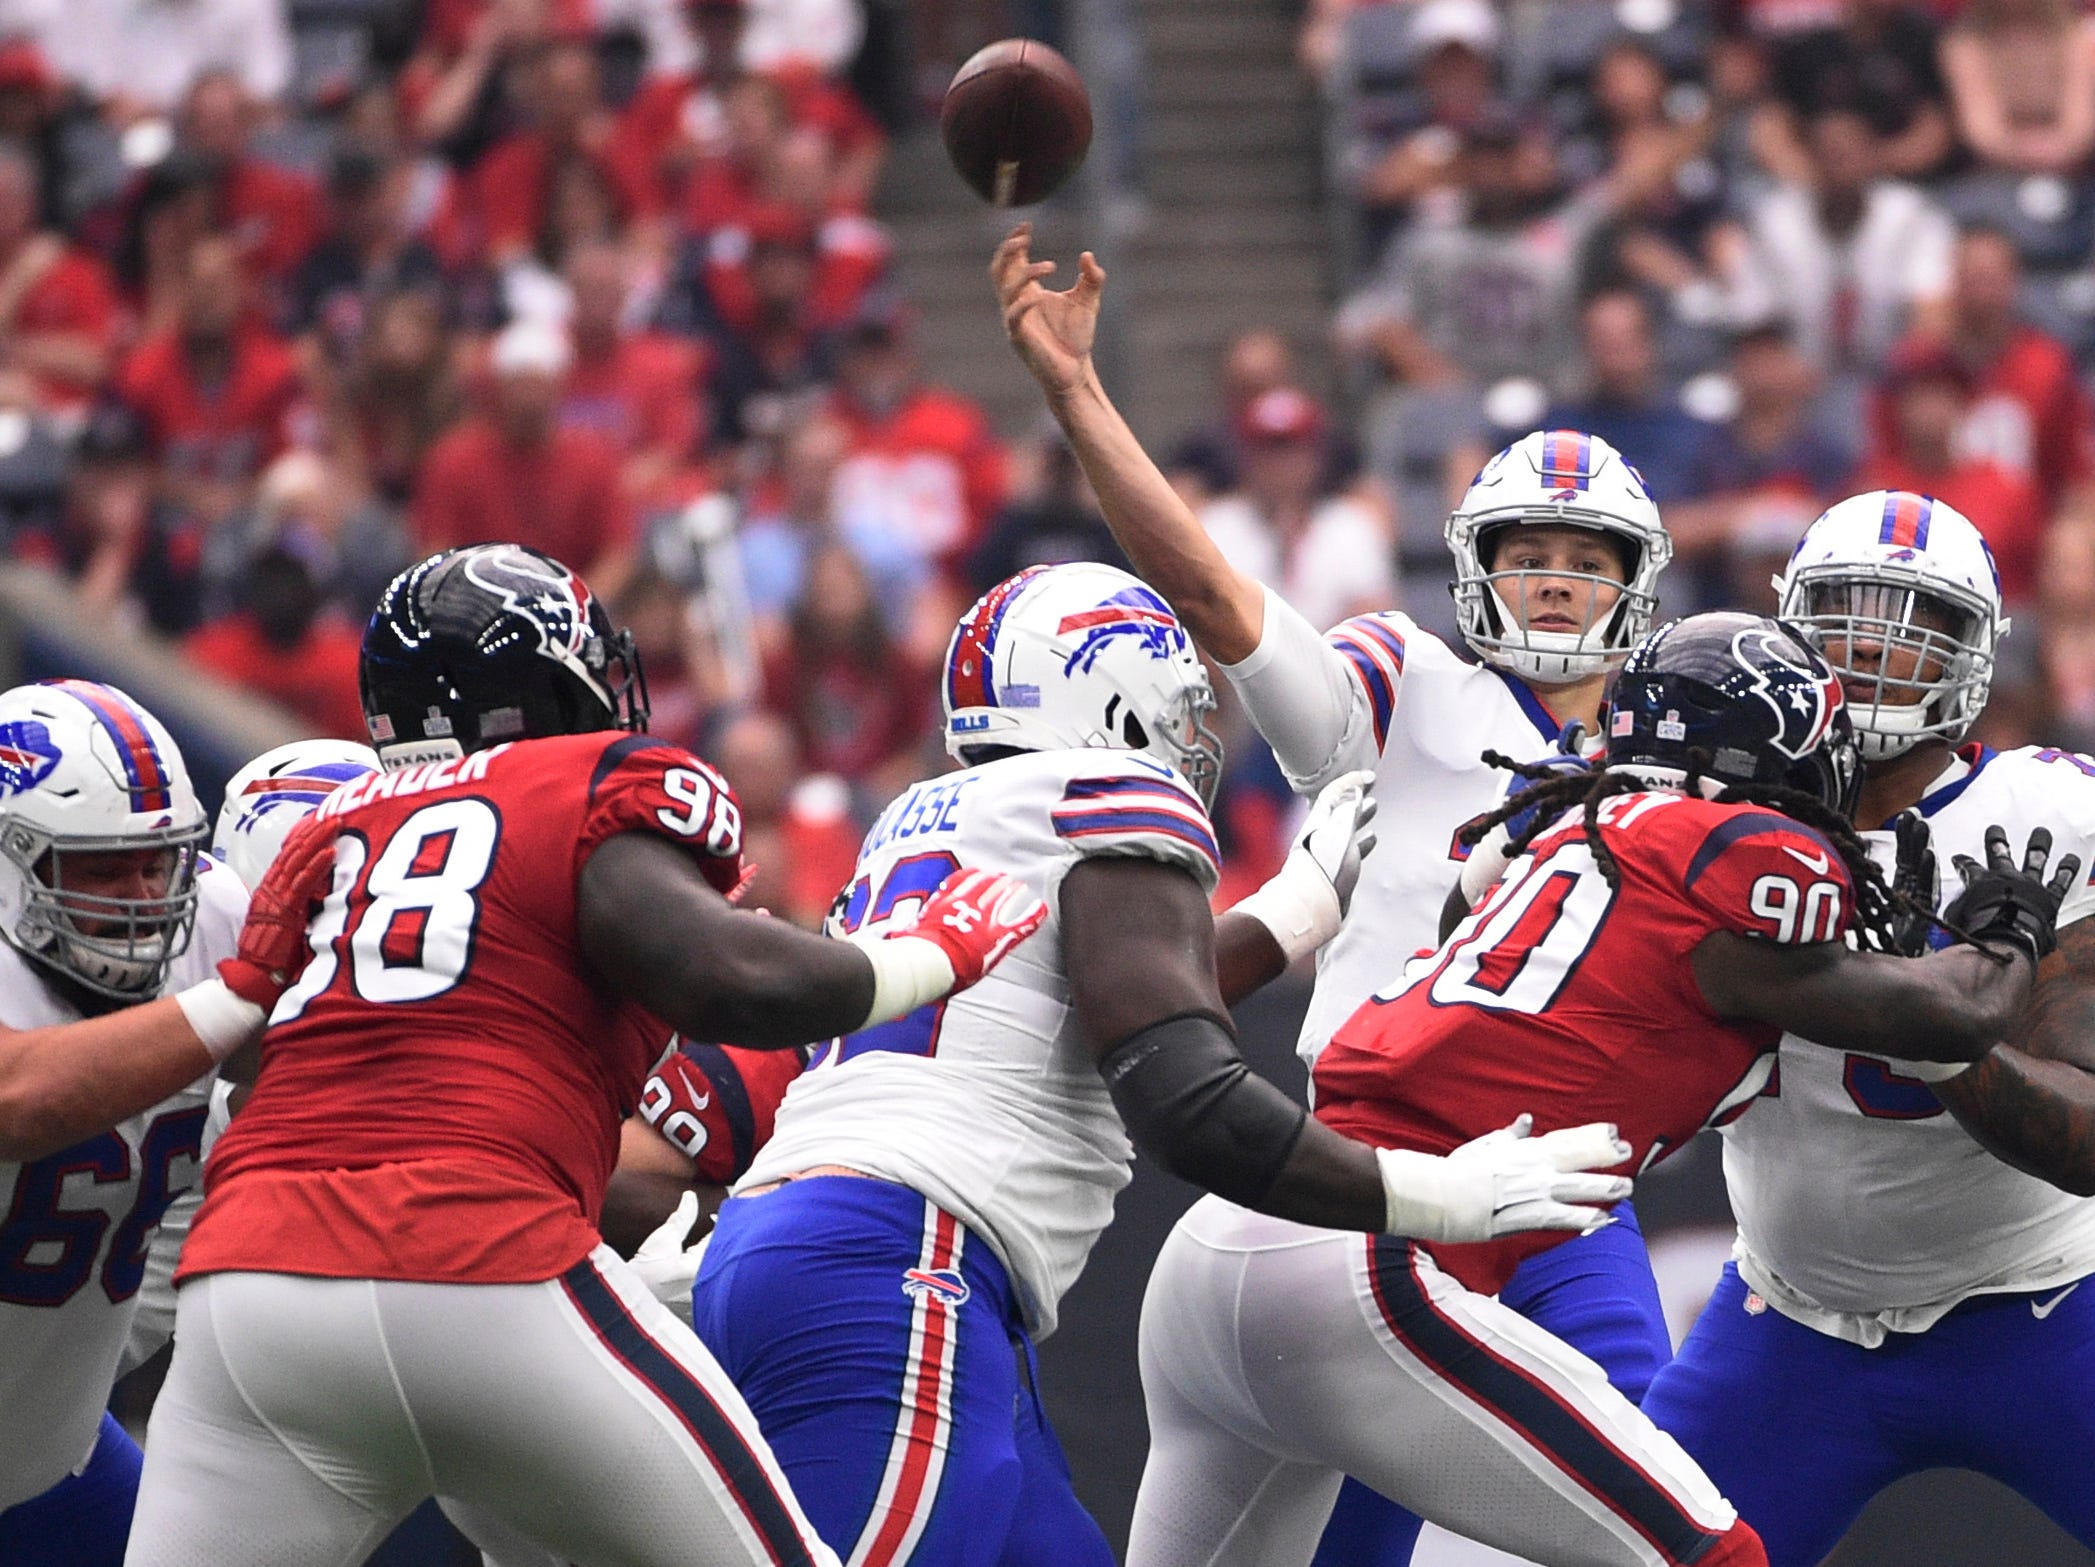 Buffalo Bills quarterback Josh Allen (17) throws against the Houston Texans during the first quarter of an NFL football game, Sunday, Oct. 14, 2018, in Houston. (AP Photo/Eric Christian Smith)